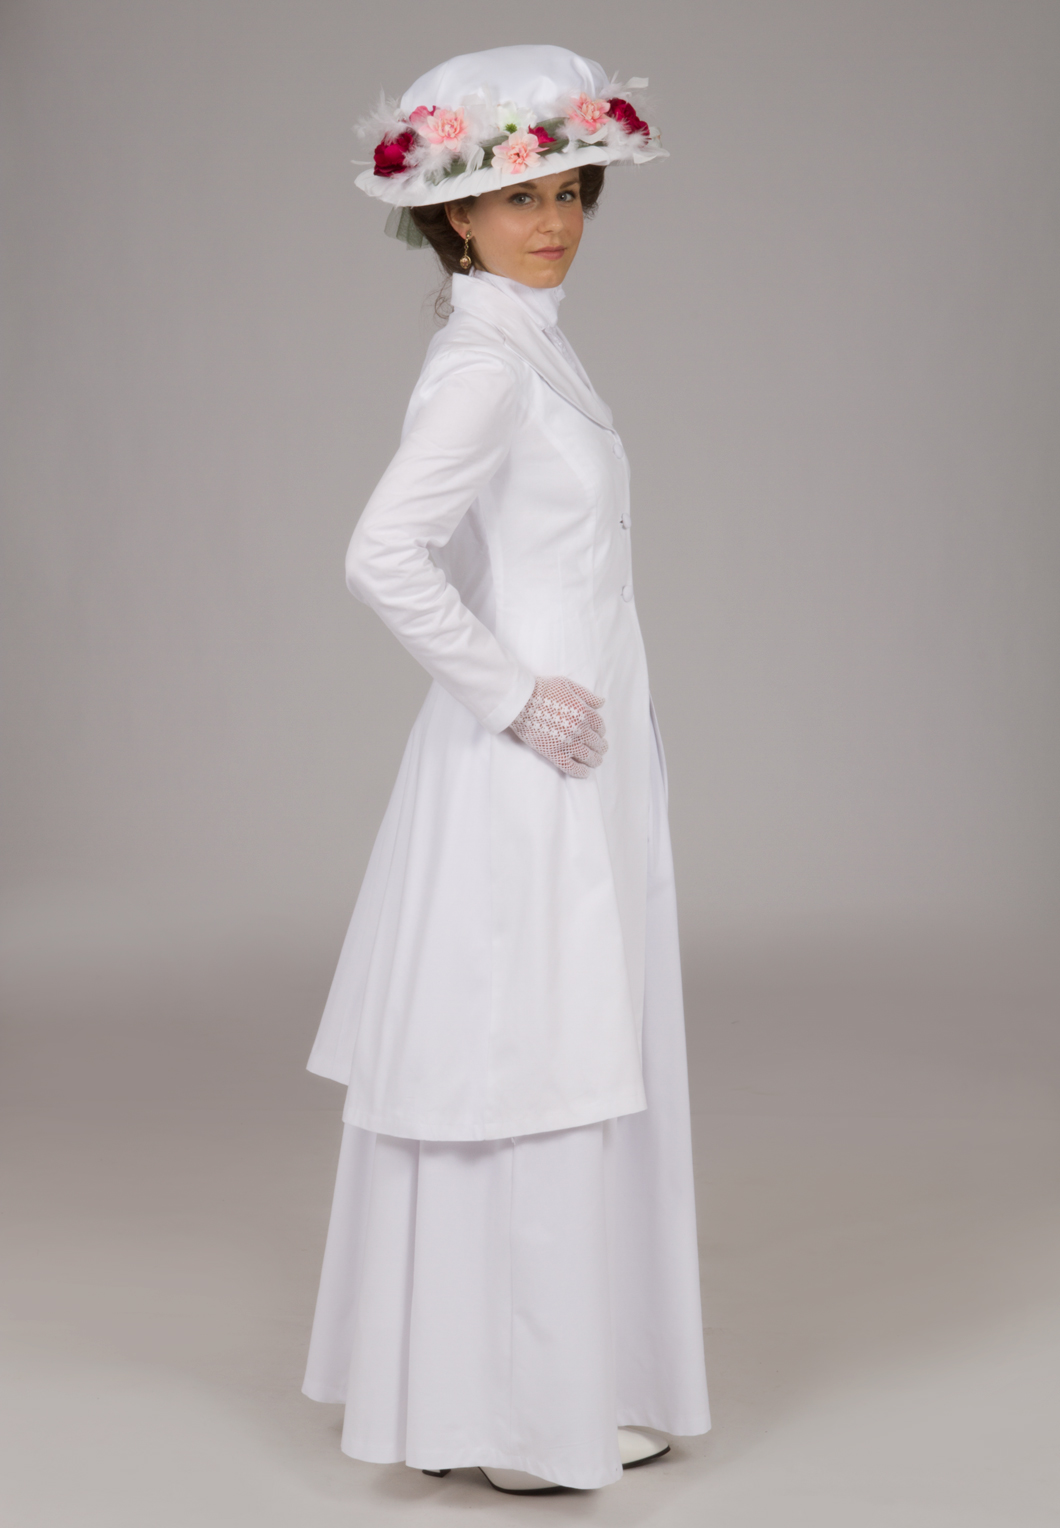 Downton Abbey Fashions from Recollections (Page 2 of 4)